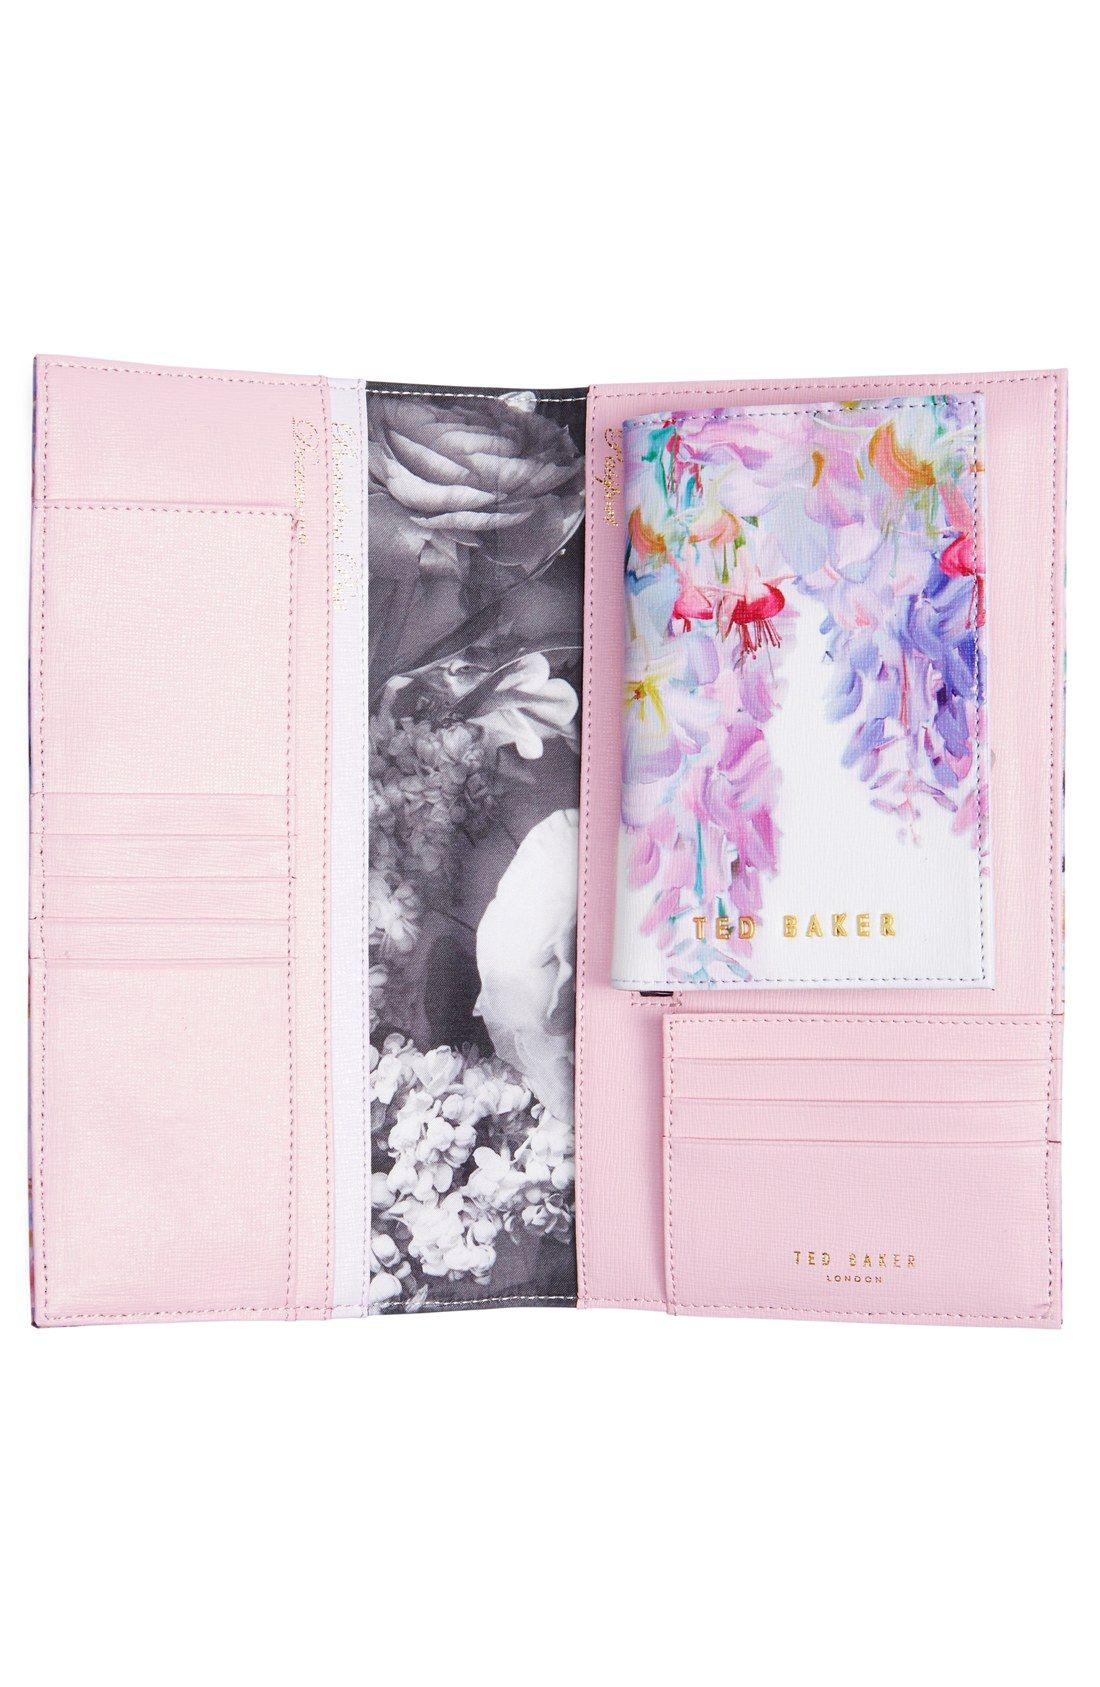 aa820d1e7f3b84 Ted Baker London  Hanging Garden  Leather Travel Wallet   Passport Cover Set